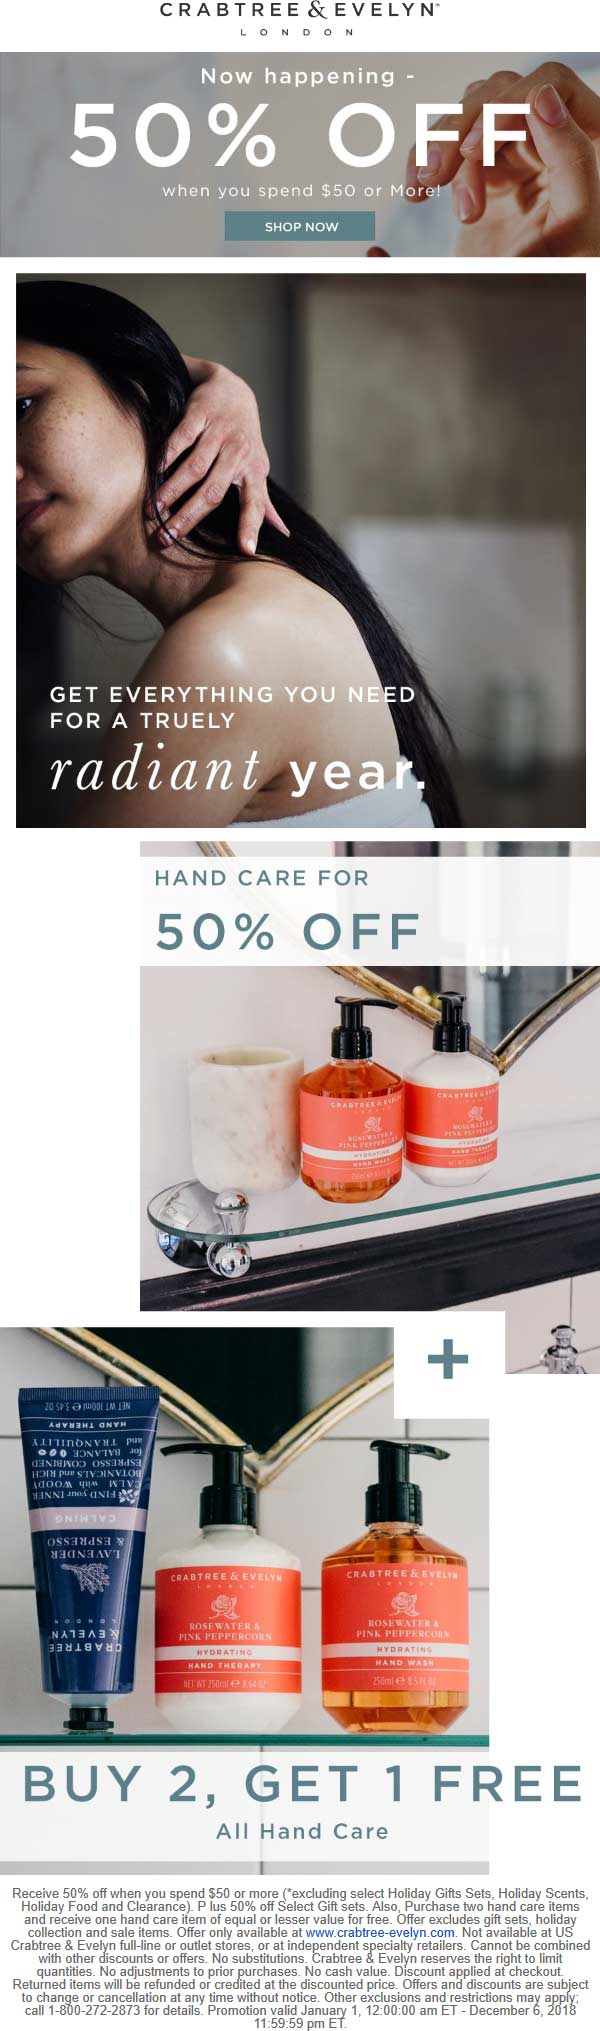 Crabtree & Evelyn Coupon January 2020 50% off $50+ & more online at Crabtree & Evelyn